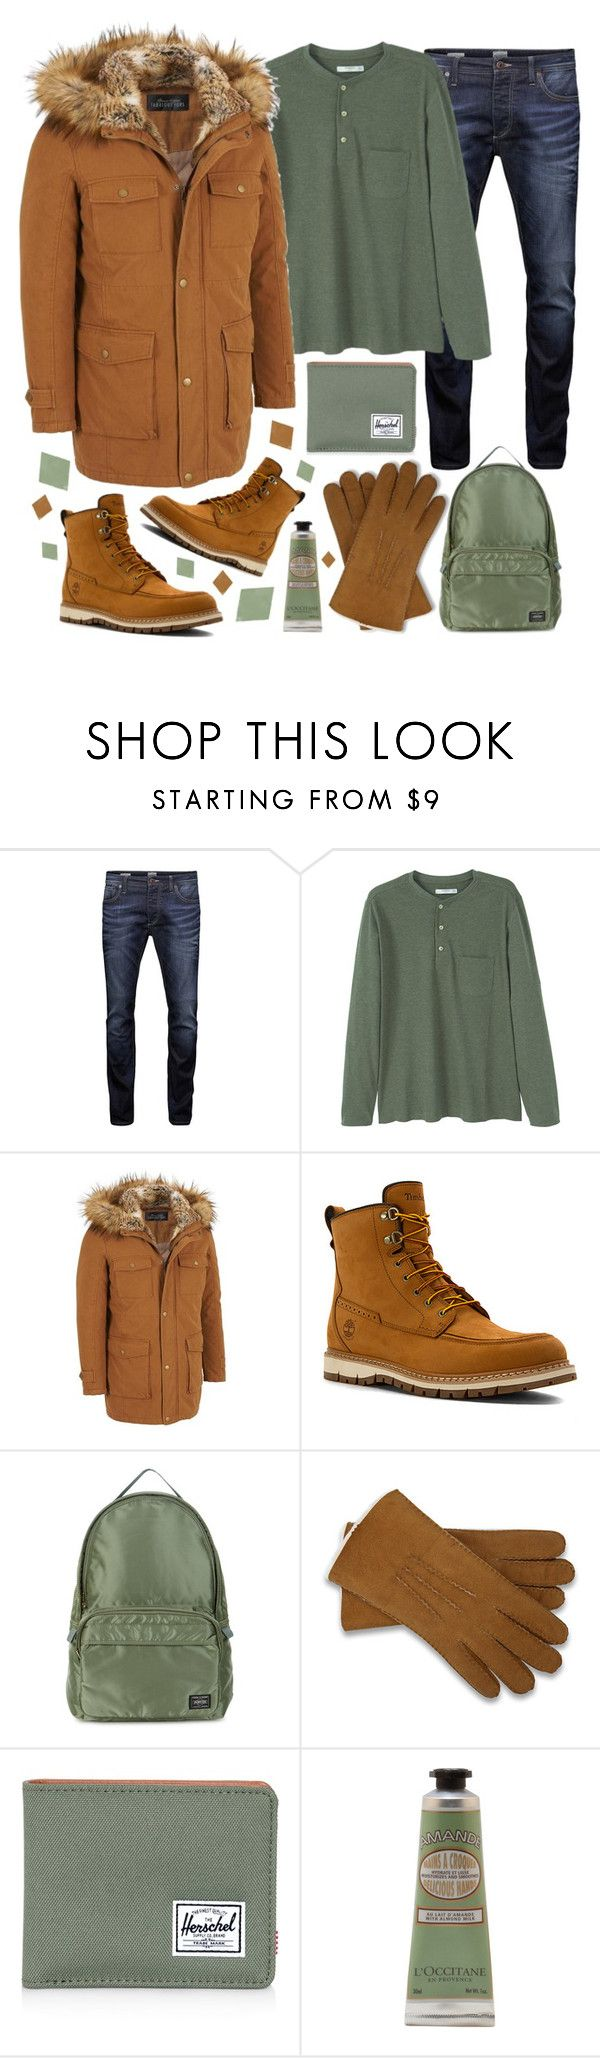 """Timberland Boots!"" by sanela-enter ❤ liked on Polyvore featuring Jack & Jones, MANGO MAN, Timberland, Porter, UGG Australia, Herschel Supply Co., L'Occitane, men's fashion and menswear"